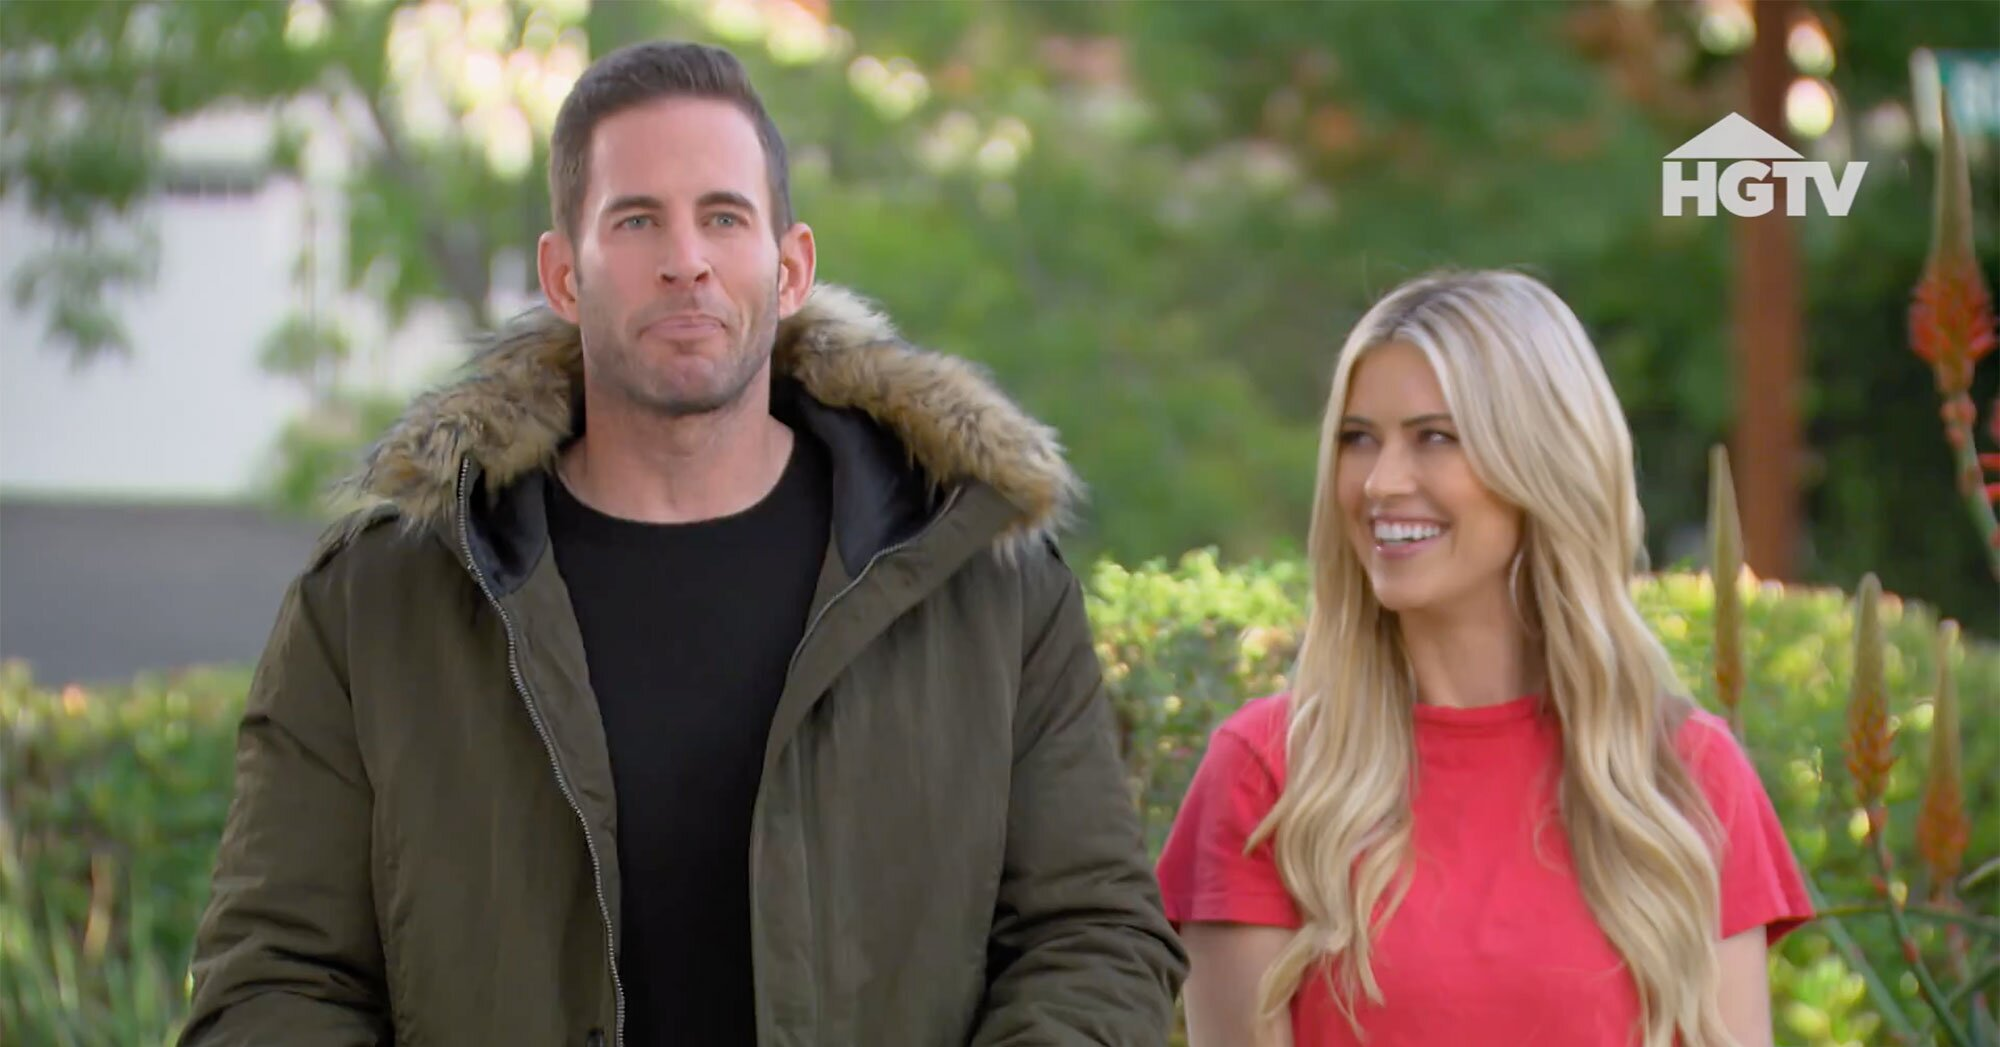 Christina Anstead opens up about filming Flip or Flop